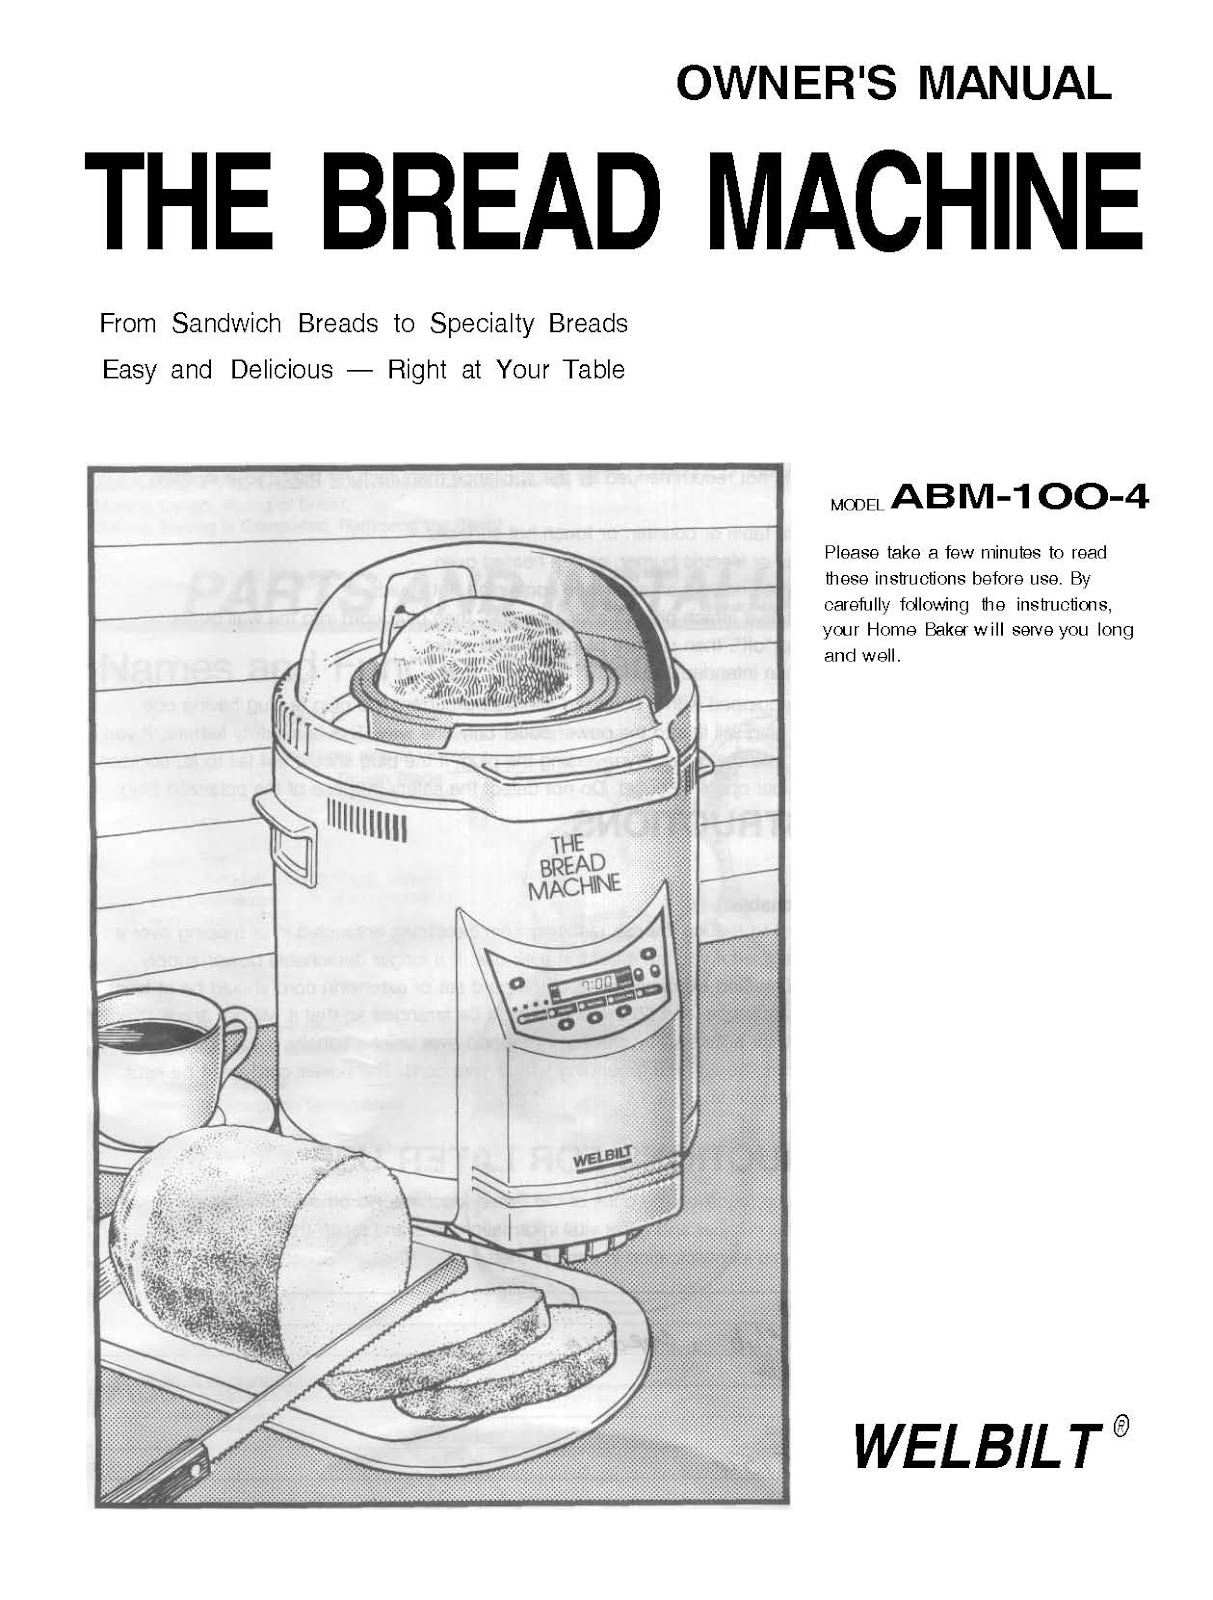 Welbilt bread machine model abm-100-3 owner's instruction manual.